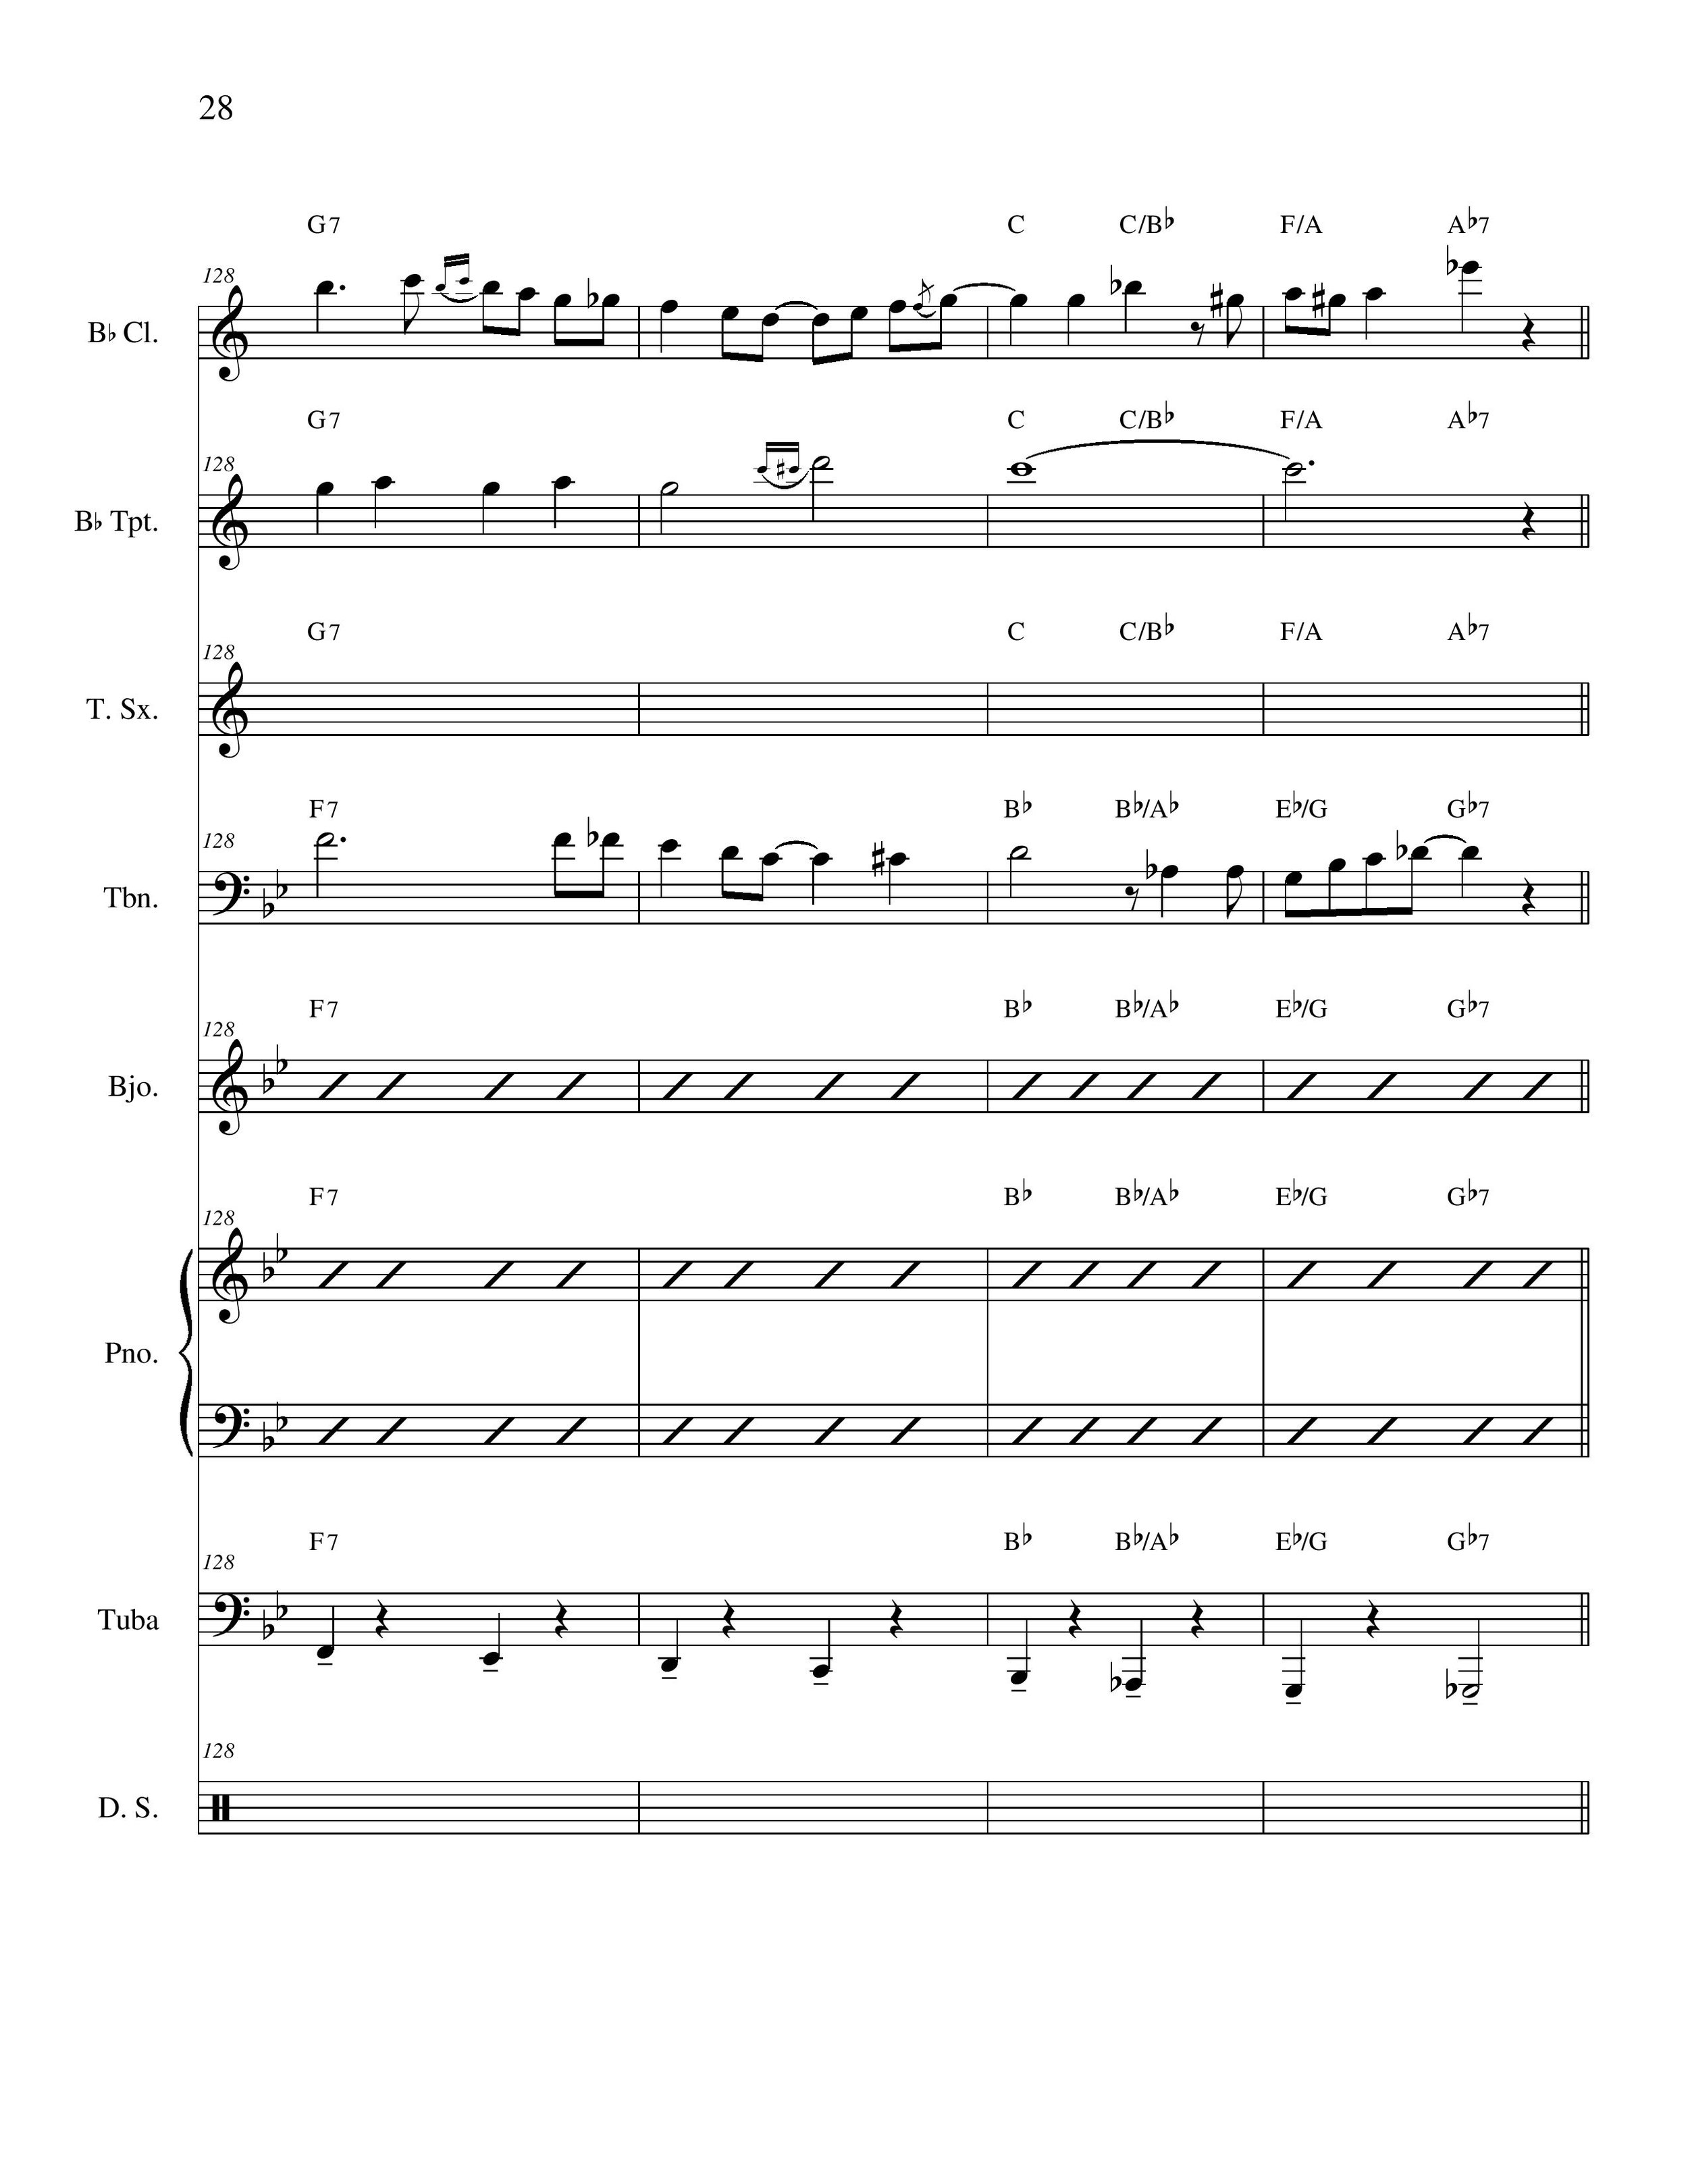 Rudolph the Red-Nosed Reindeer - Score_28.jpg